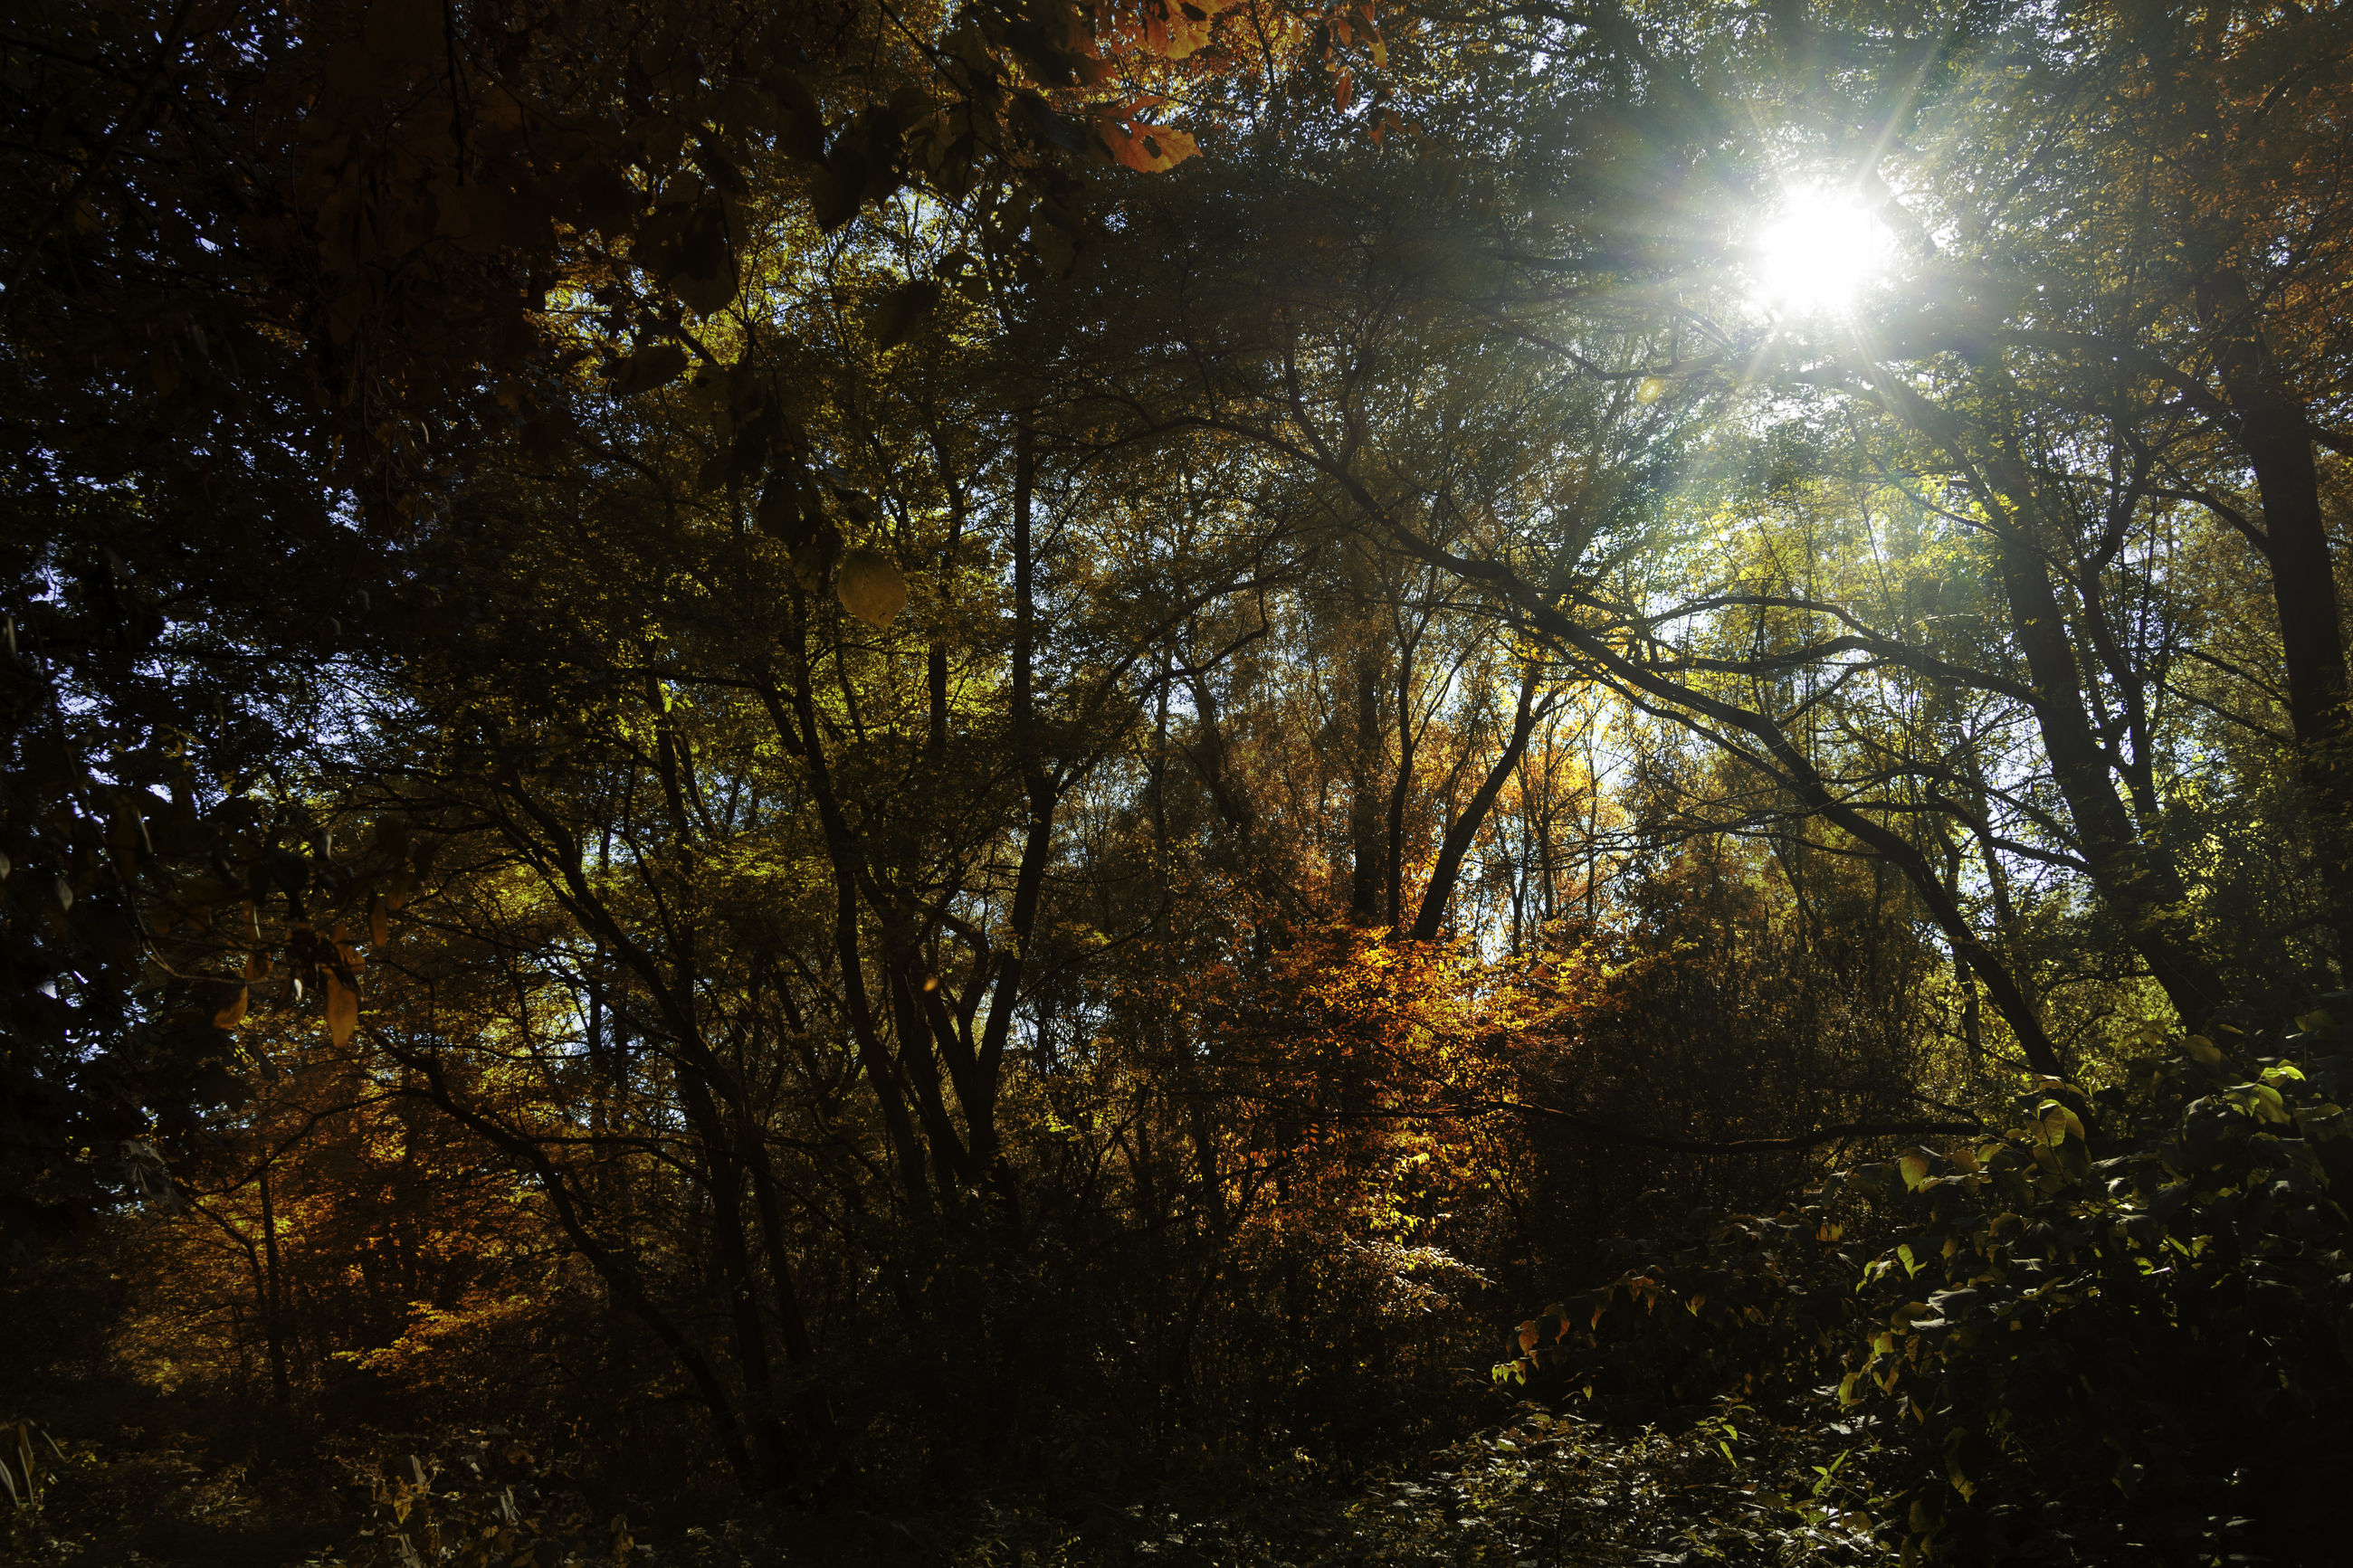 LOW ANGLE VIEW OF TREES AGAINST BRIGHT SUN IN FOREST